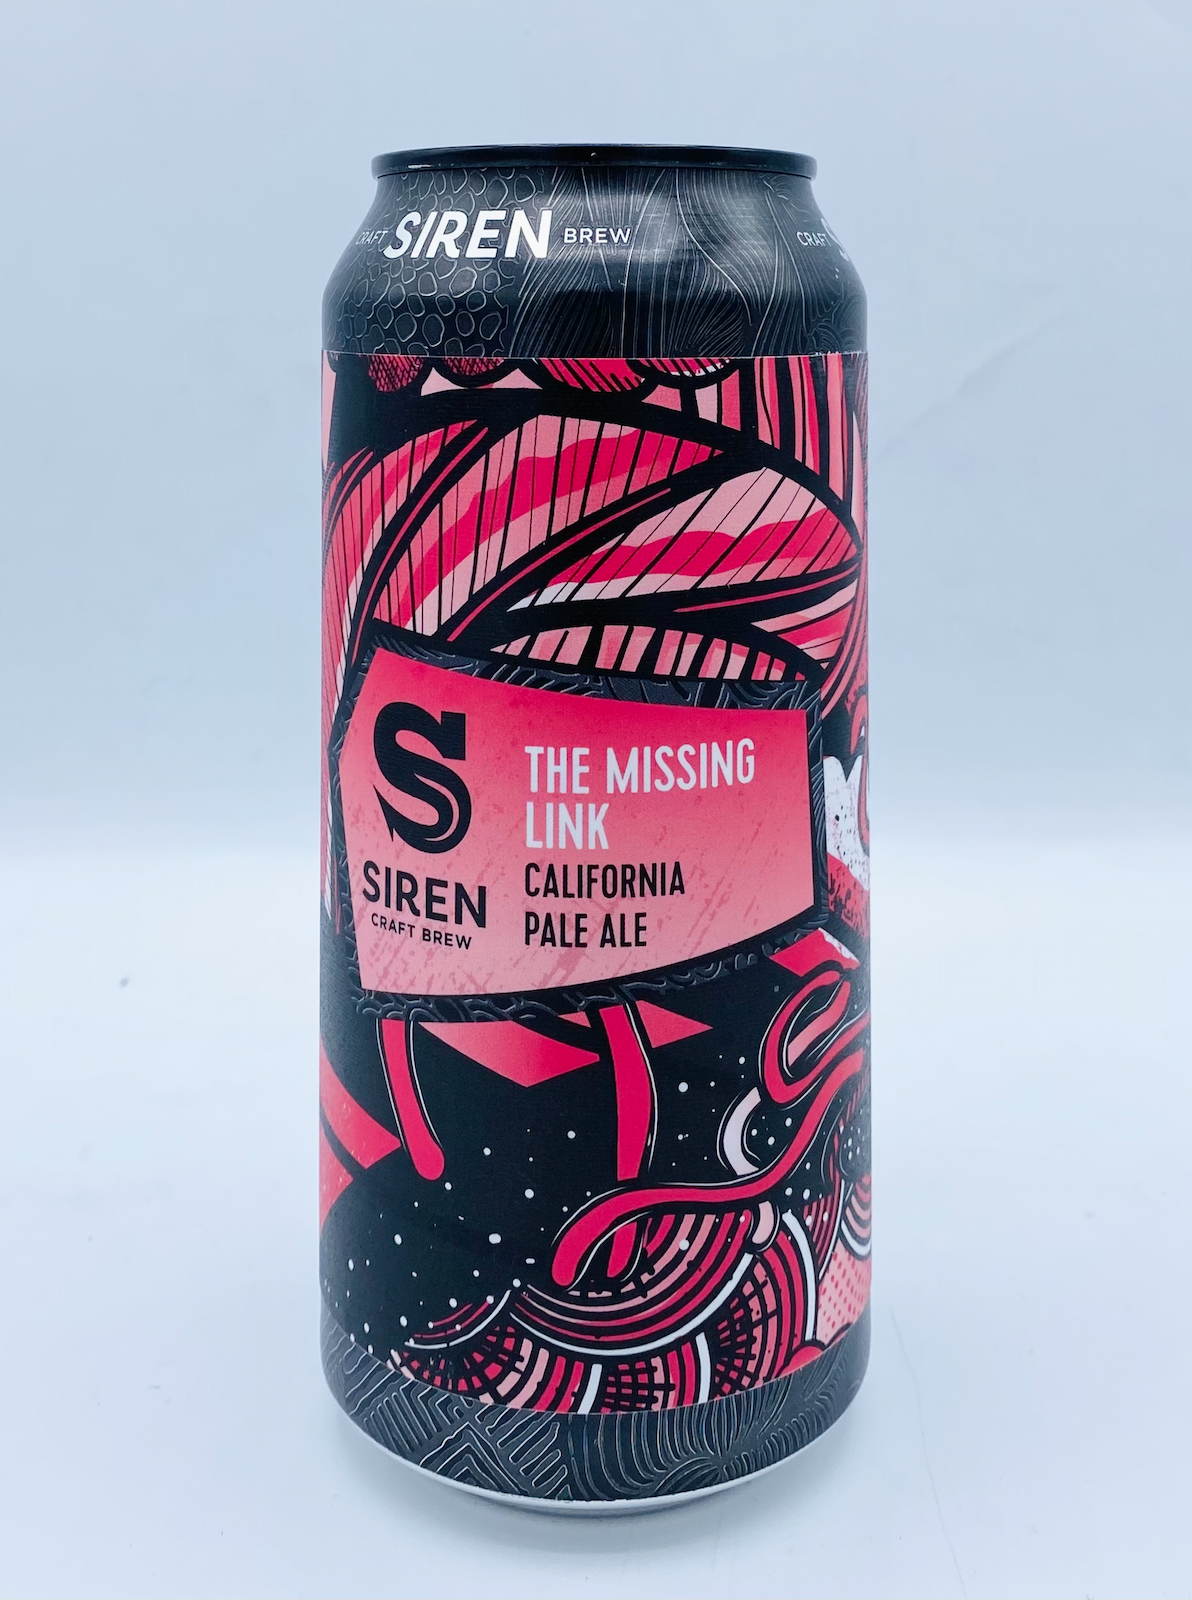 Siren Craft Brew - The Missing Link 4.6%